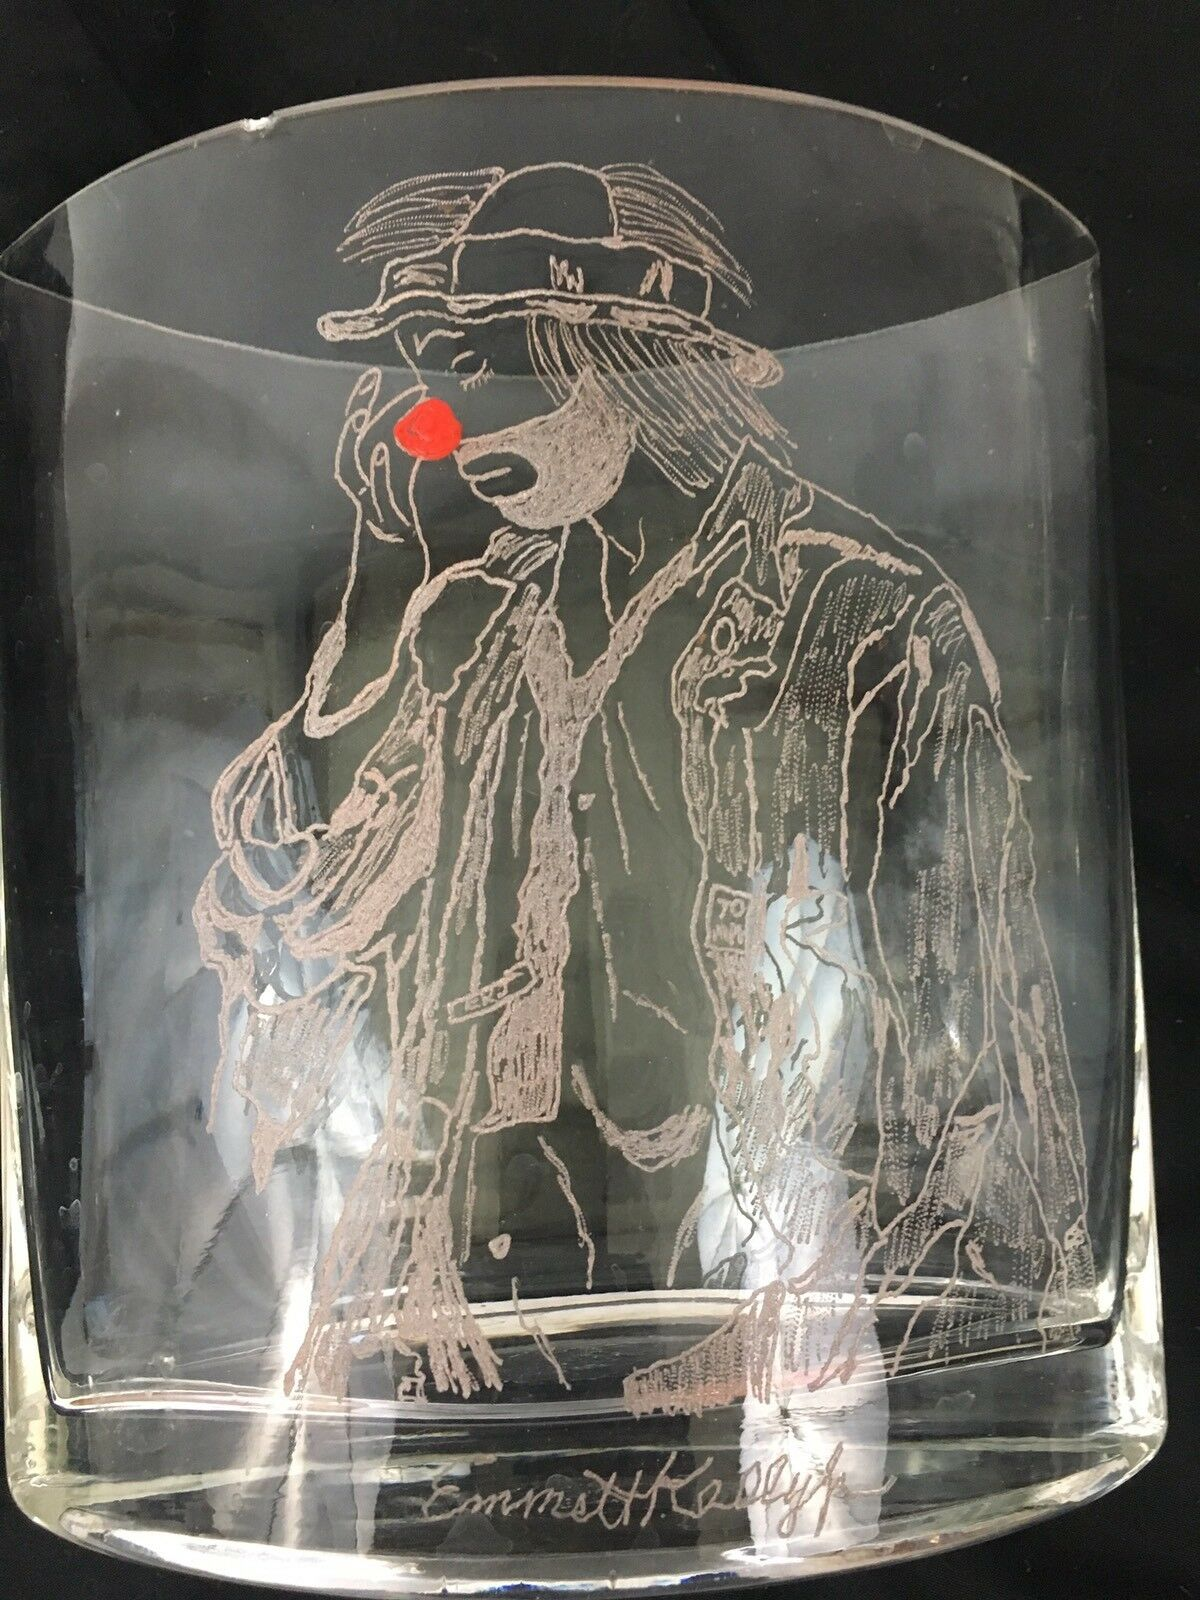 One Of A Kind Vases Hand Etched With Emmett Kelly Images Set Of 6 Без бренда - фотография #4